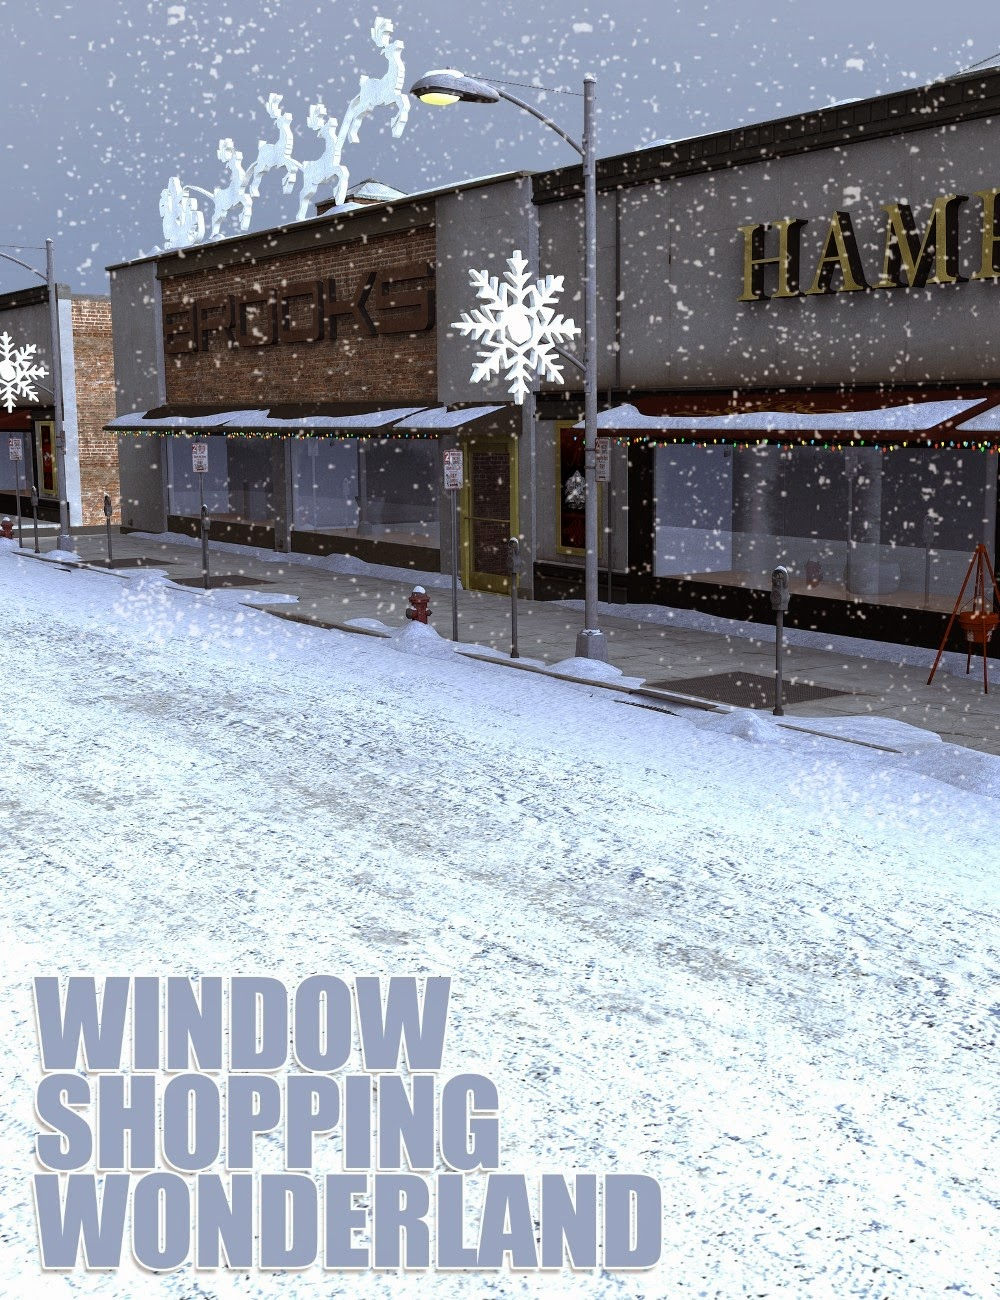 Download daz studio 3 for free daz 3d window shopping for Window wonderland